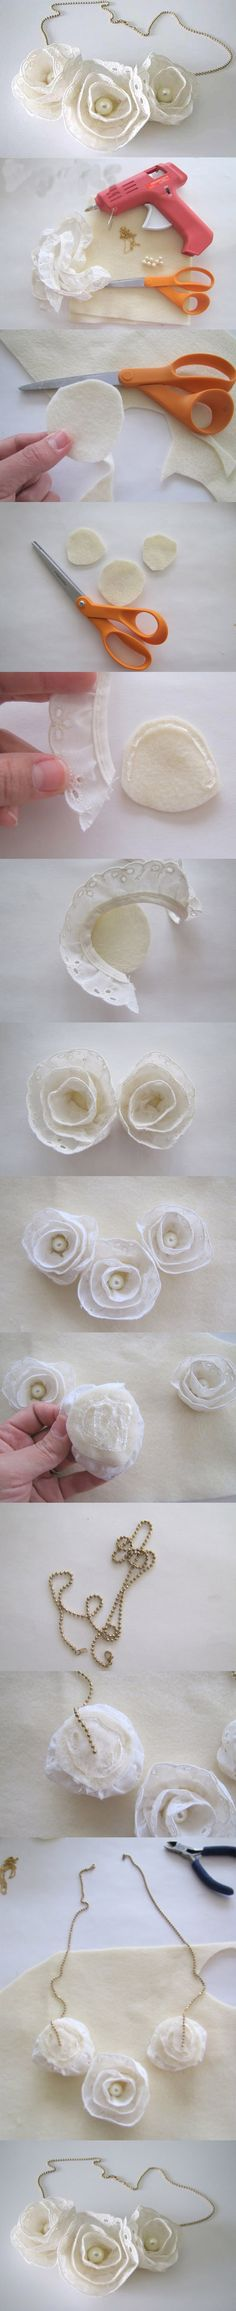 Diy Lace flowers